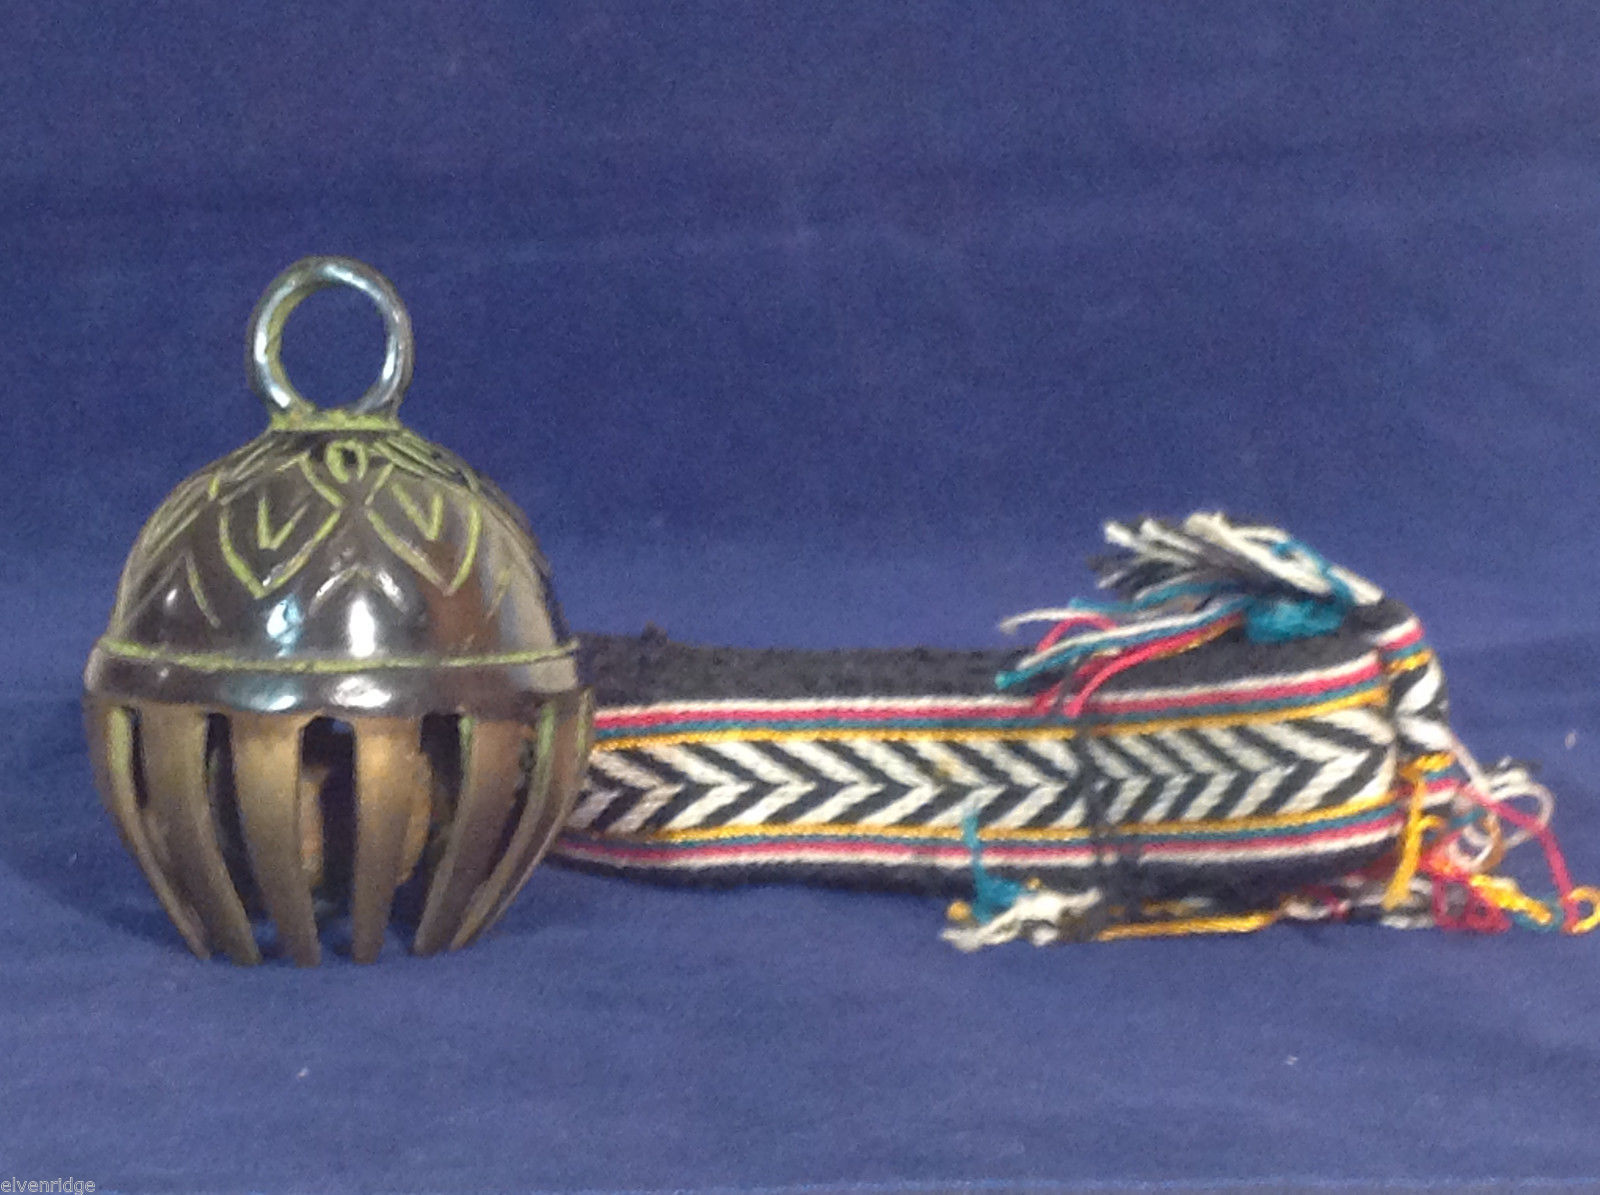 "Ornate Tibetan Cowbell Cow Bell w/ Colorful Hand-Woven Strap 3.25"" X 2.25"" #1"